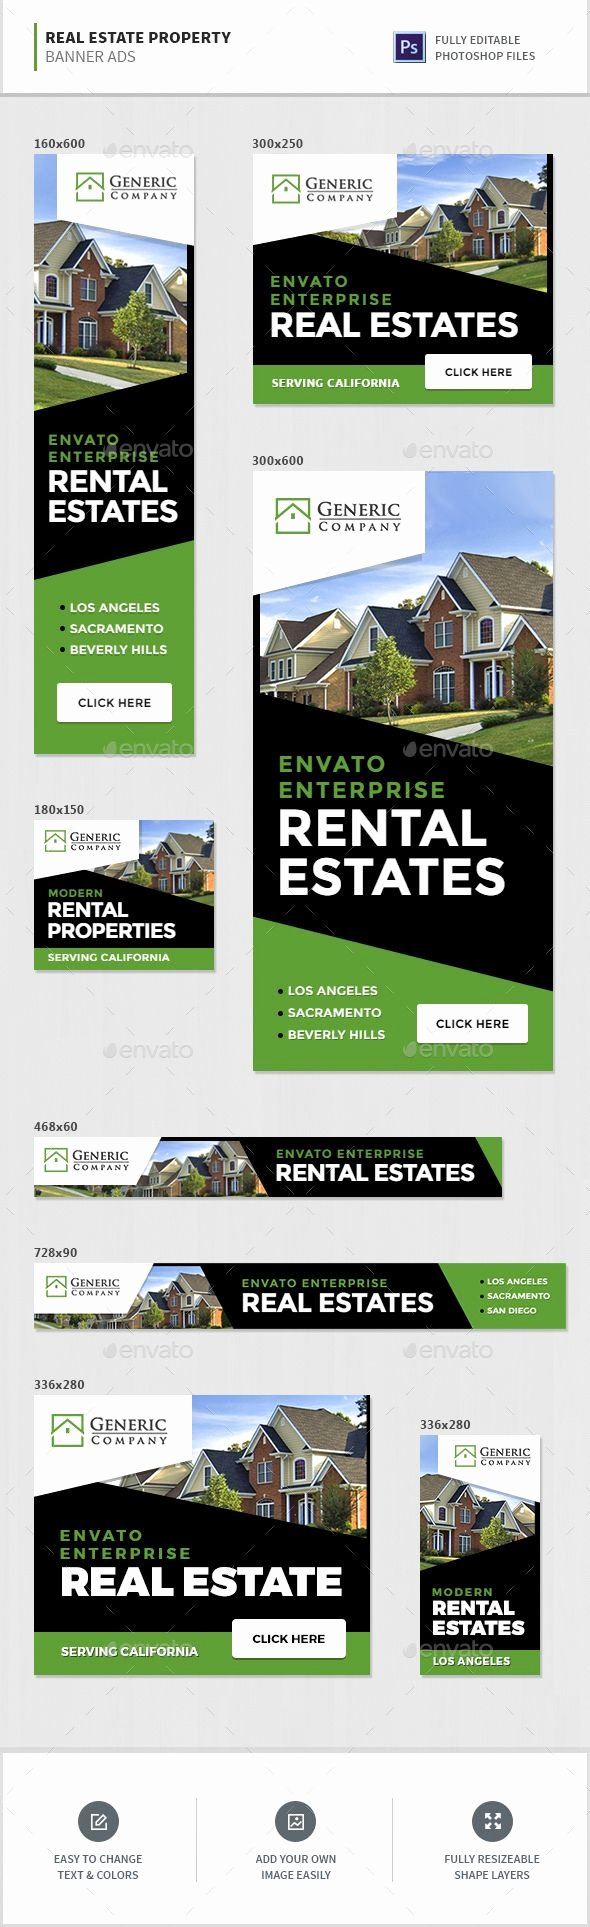 Real Estate Banner Ads Lovely Pin by Best Graphic Design On Web Banners Template Psd